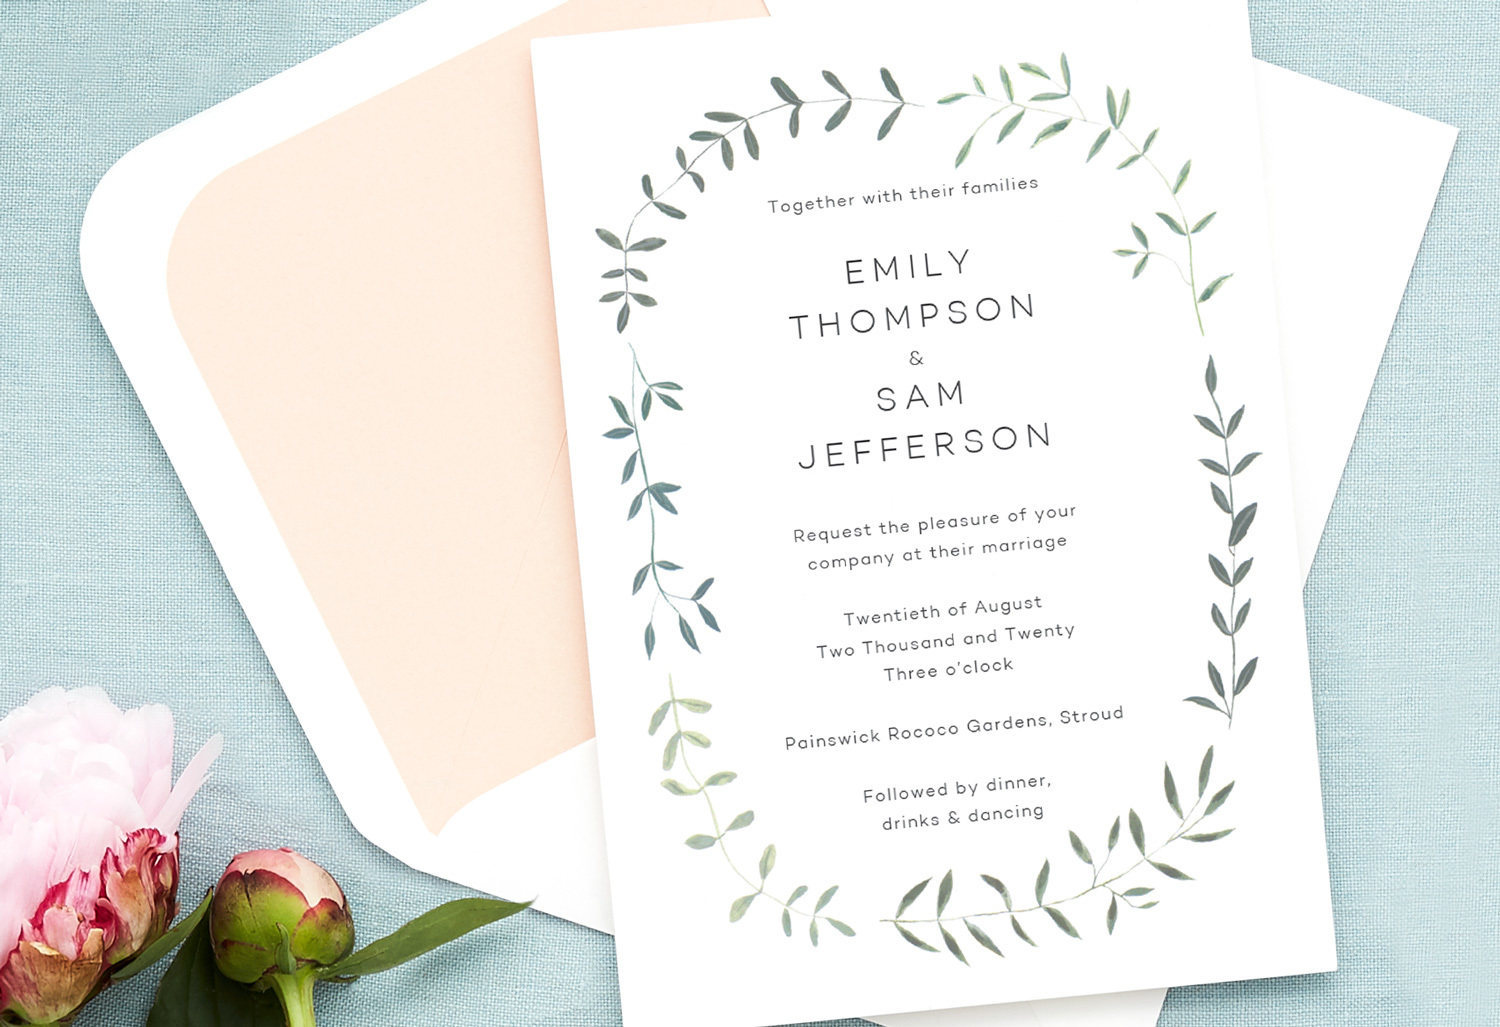 Wording Of Wedding Invitations: Wedding Invitation Wording - Ideas & Inspiration